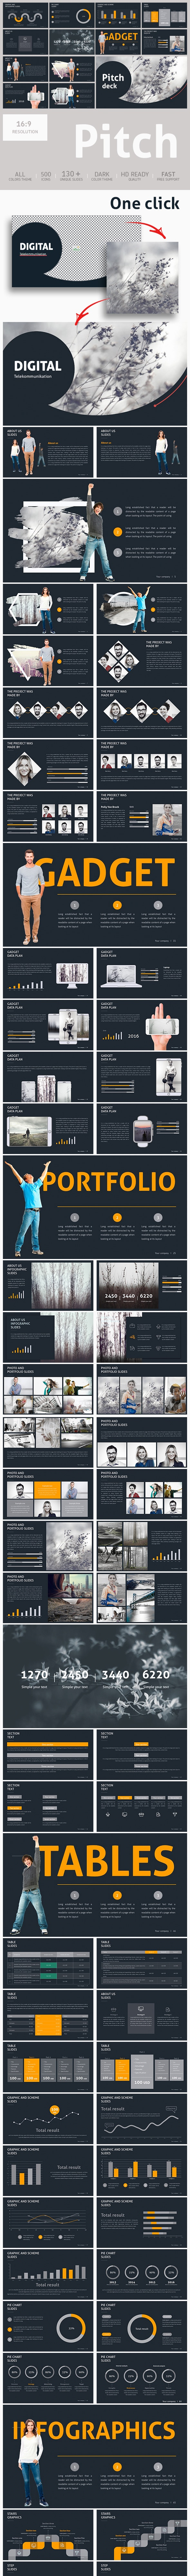 Pitch Deck PowerPoint Presentation - Pitch Deck PowerPoint Templates